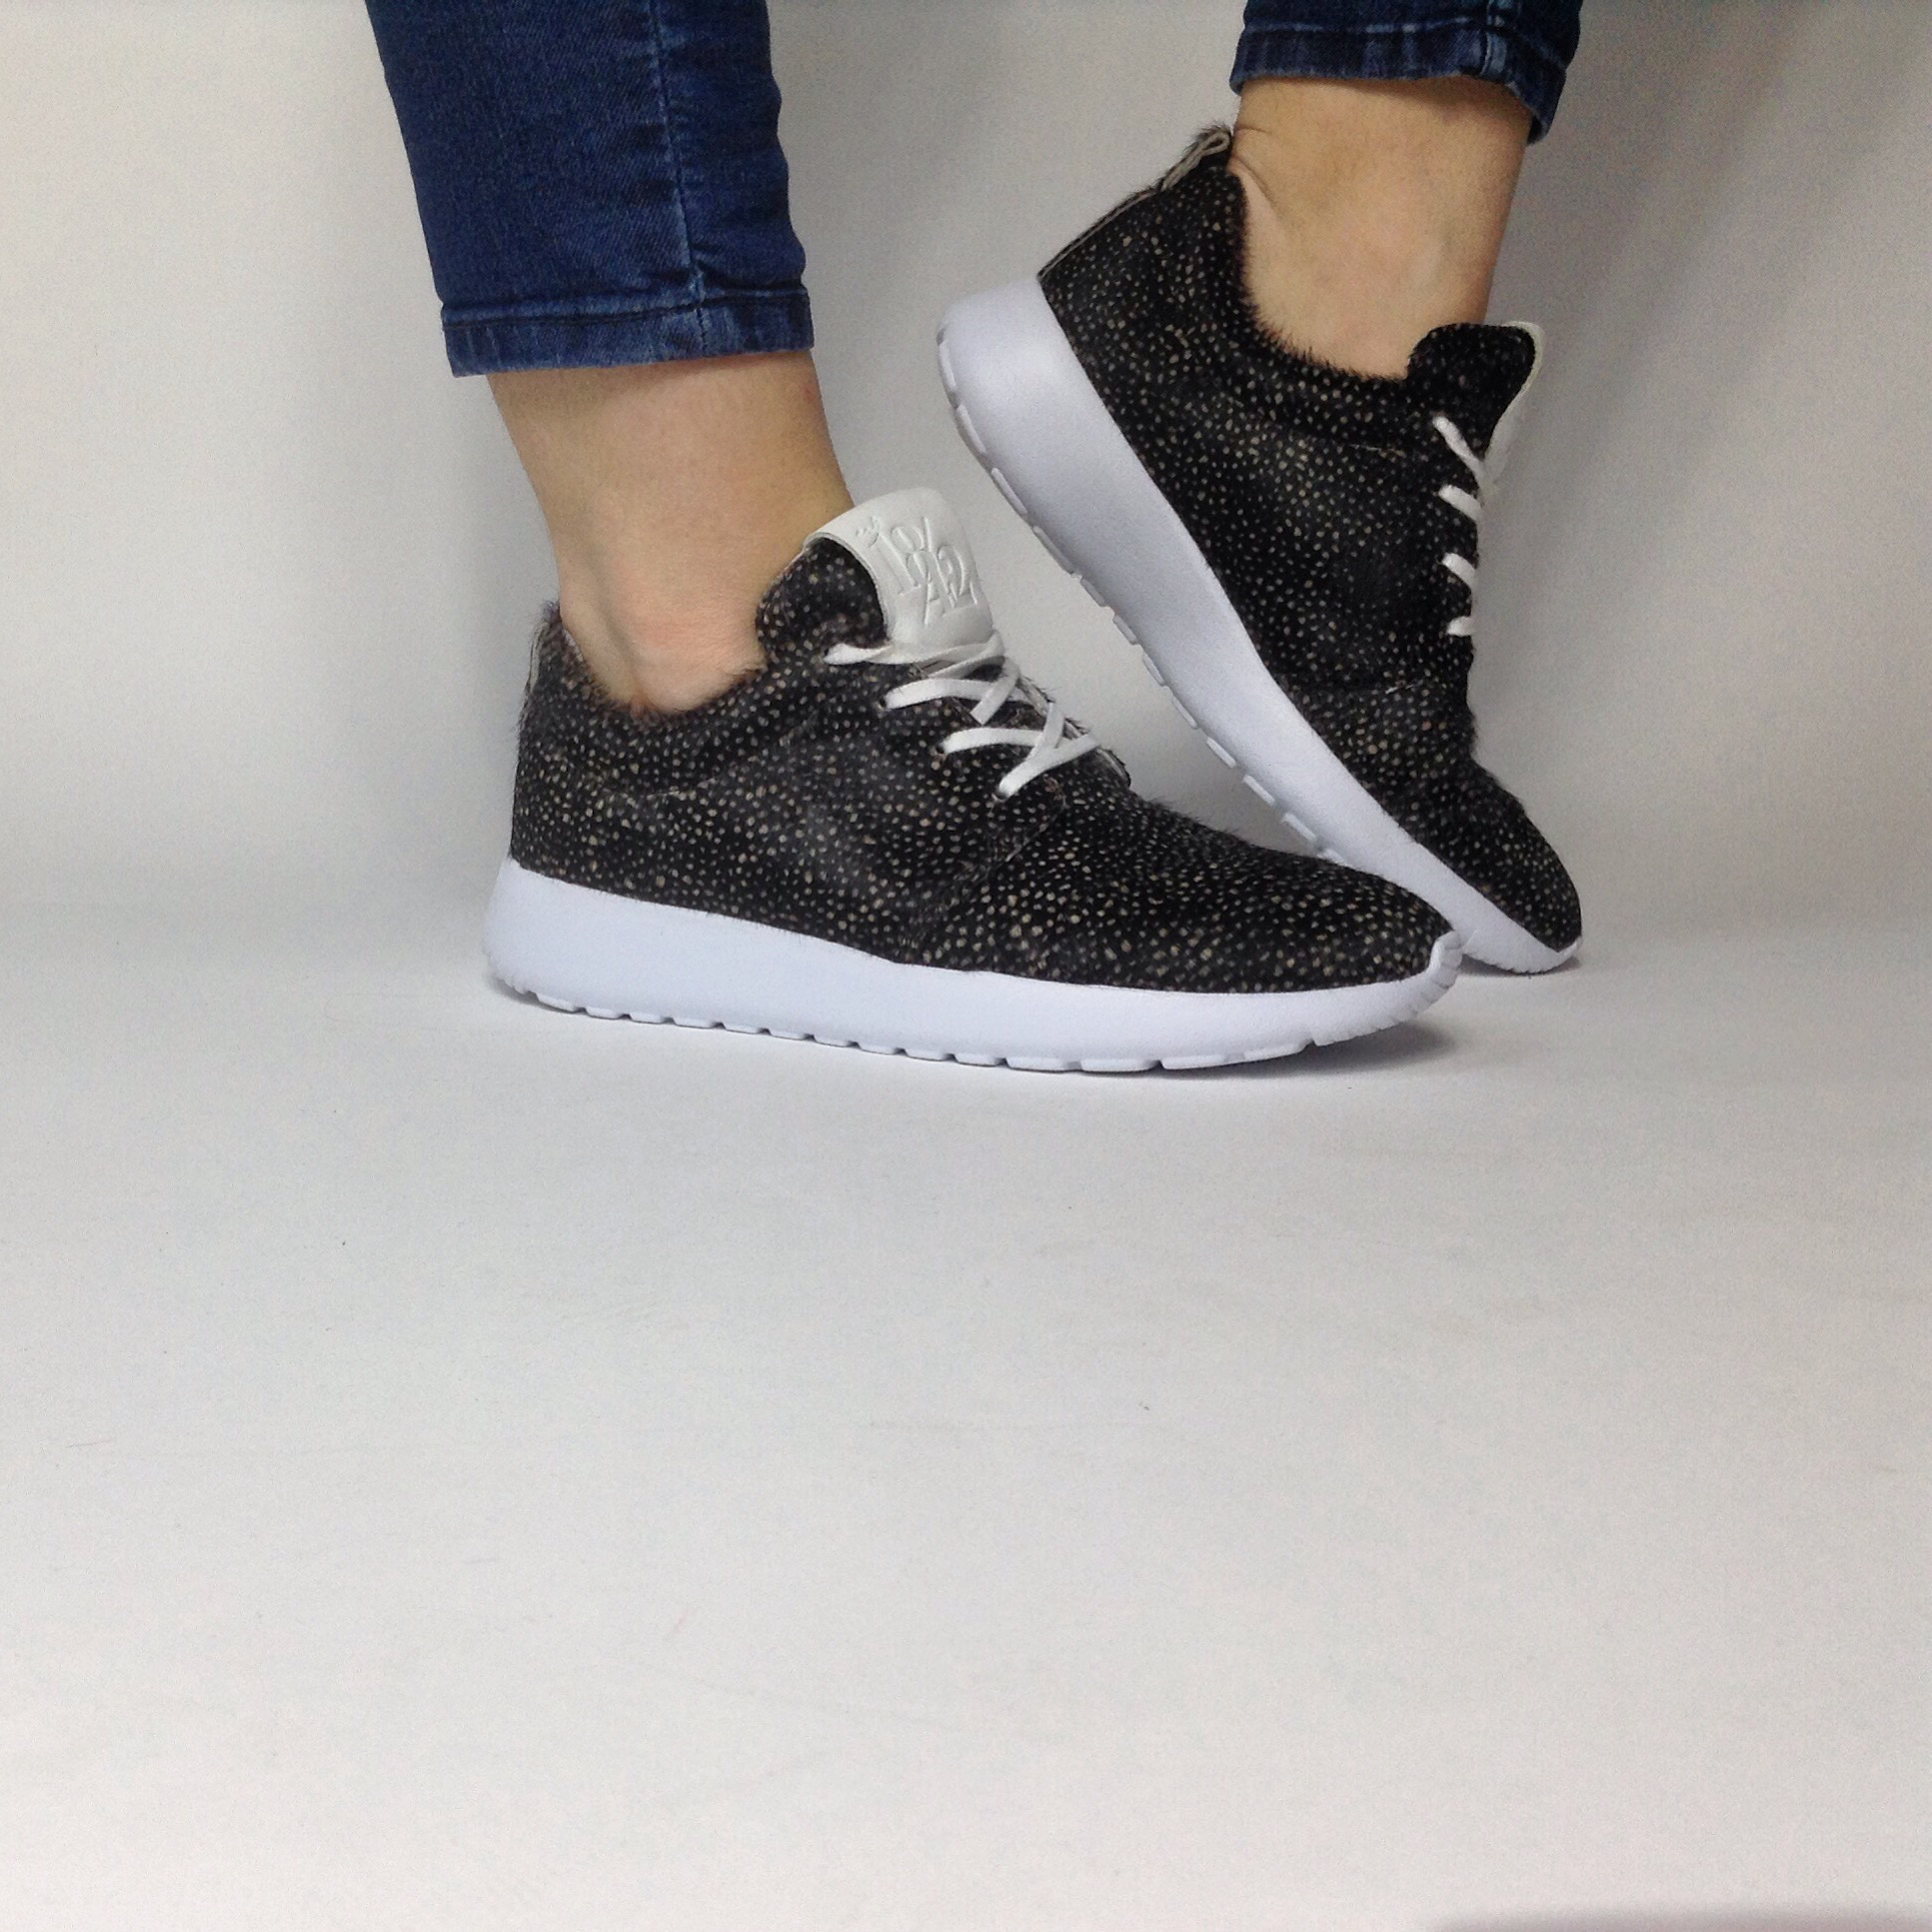 Ostrich sneakers